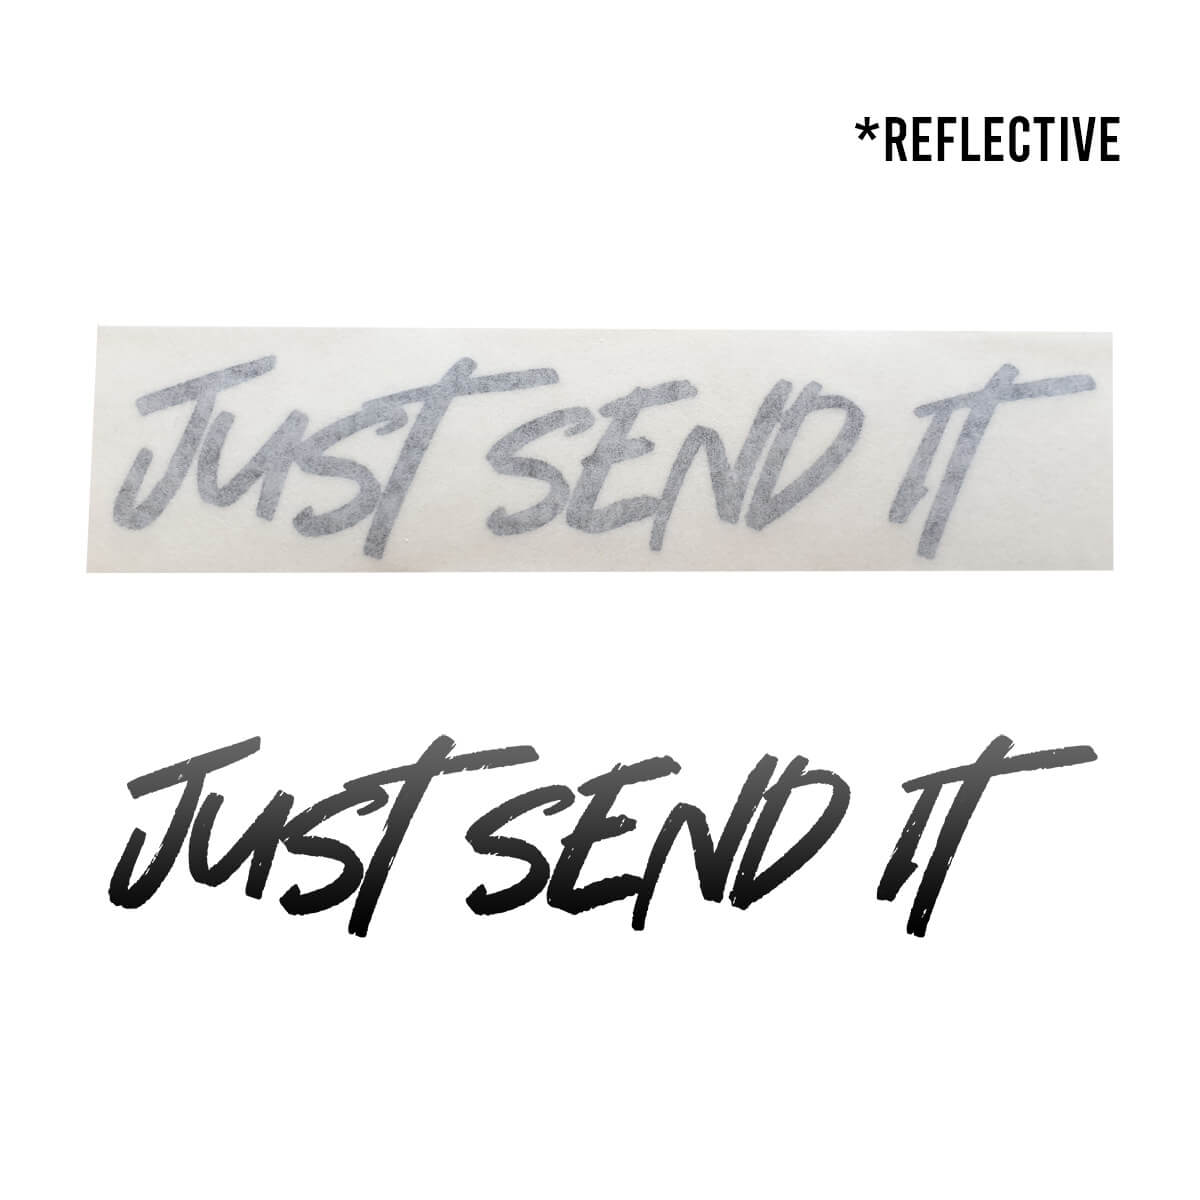 JUST SEND IT 👏 Waterproof Die-Cut Decal - Flying Solo Gear Company